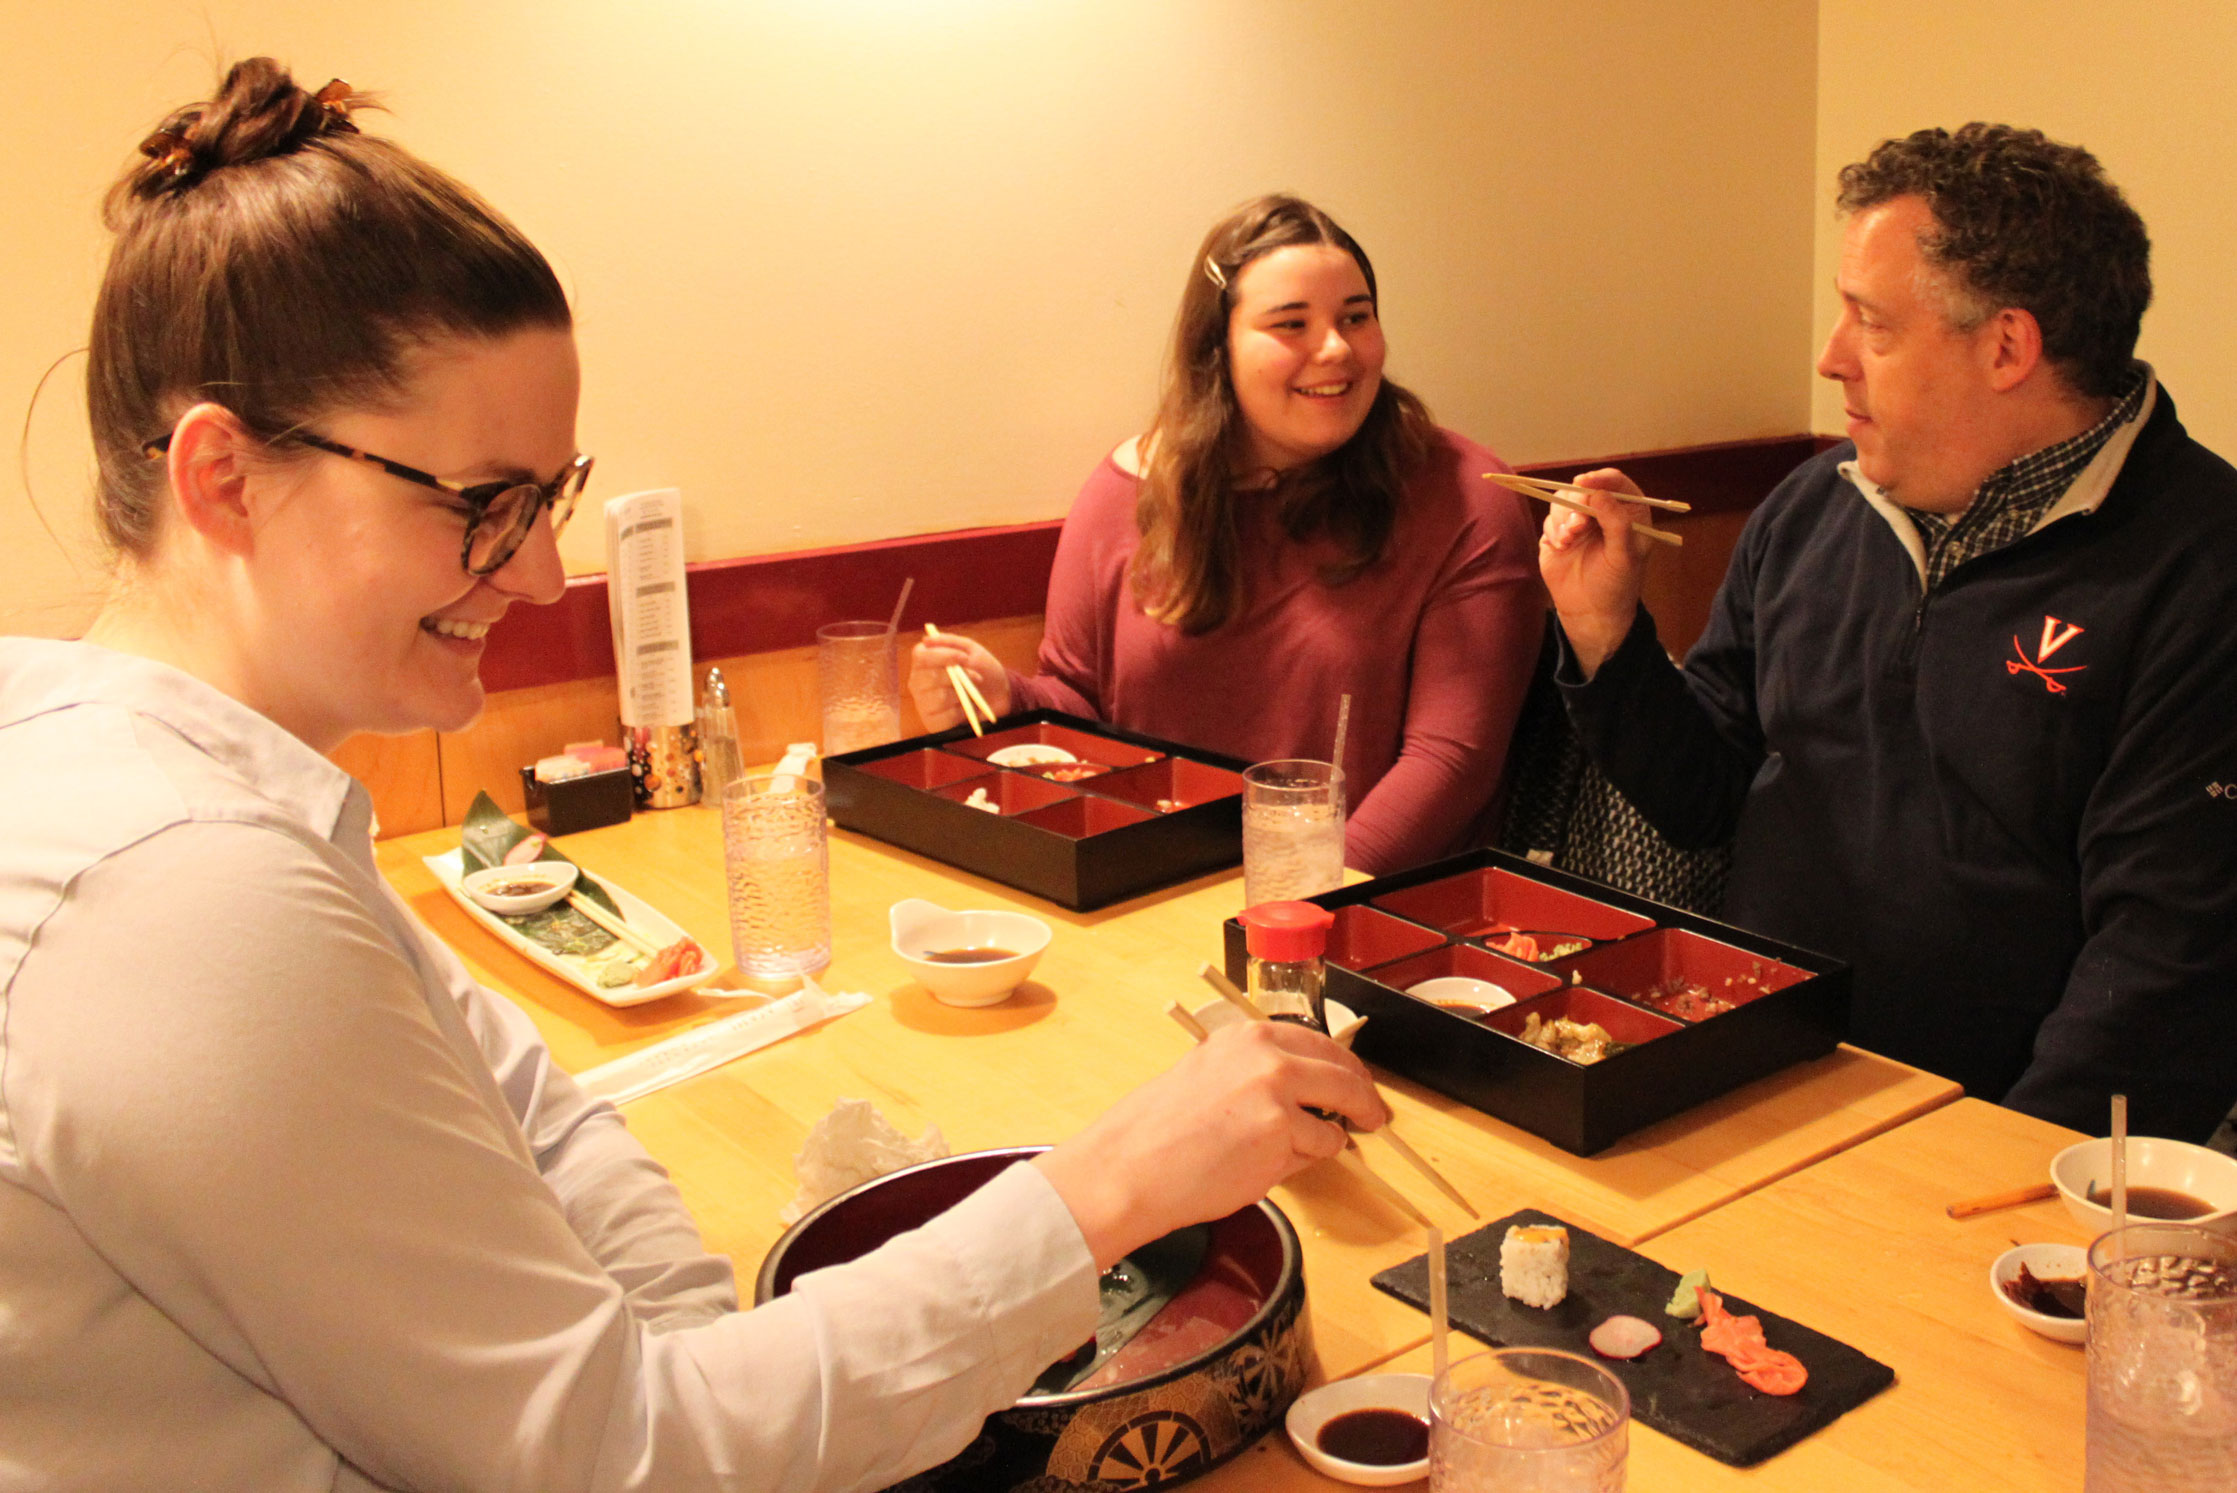 People using chopsticks to eat sushi at a restaurant